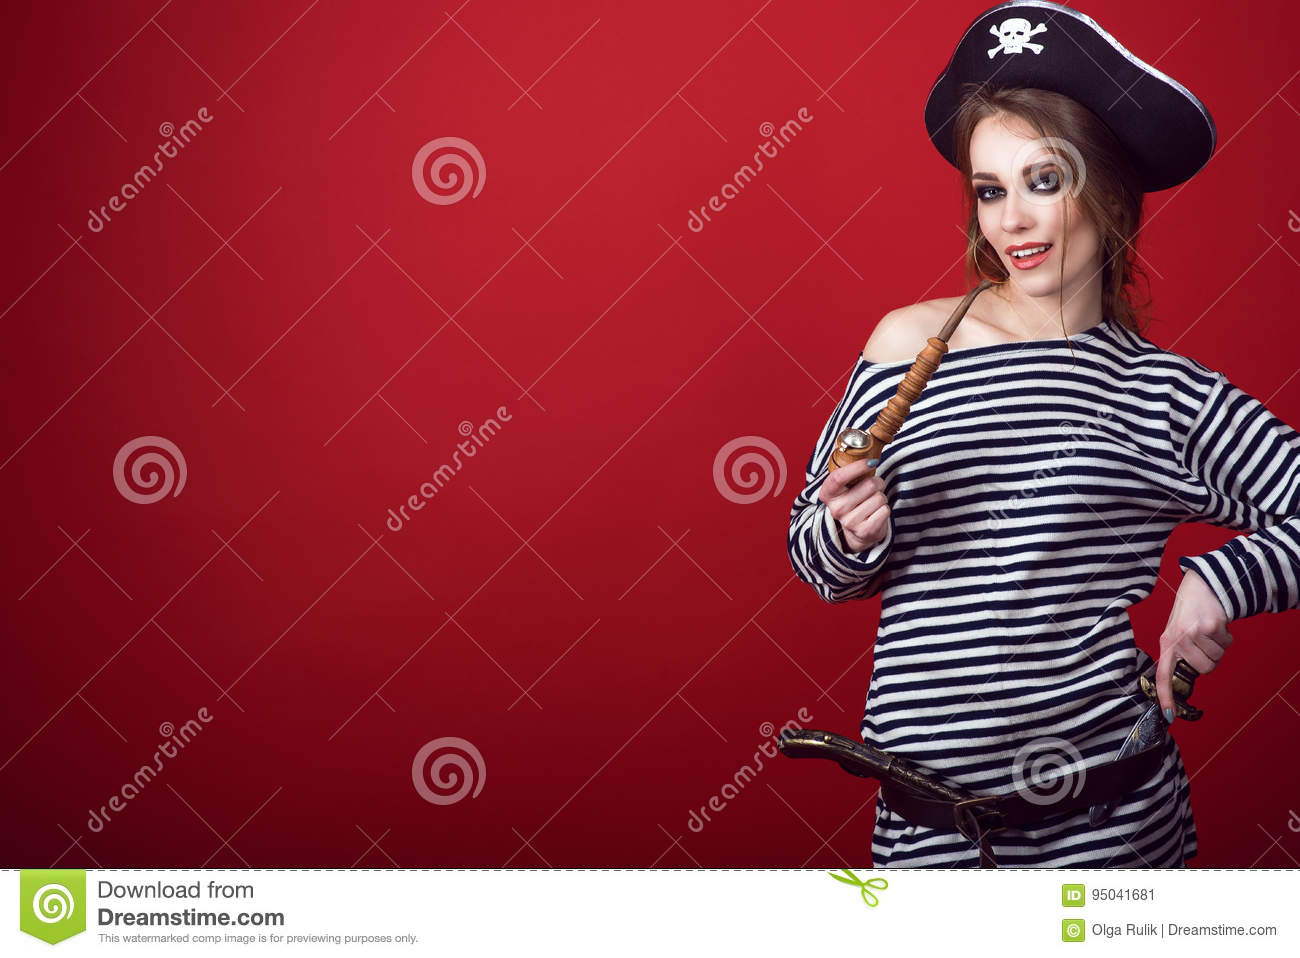 Gorgeous woman with provocative make-up wearing pirate costume and cocked hat holding a wooden carved tobacco pipe